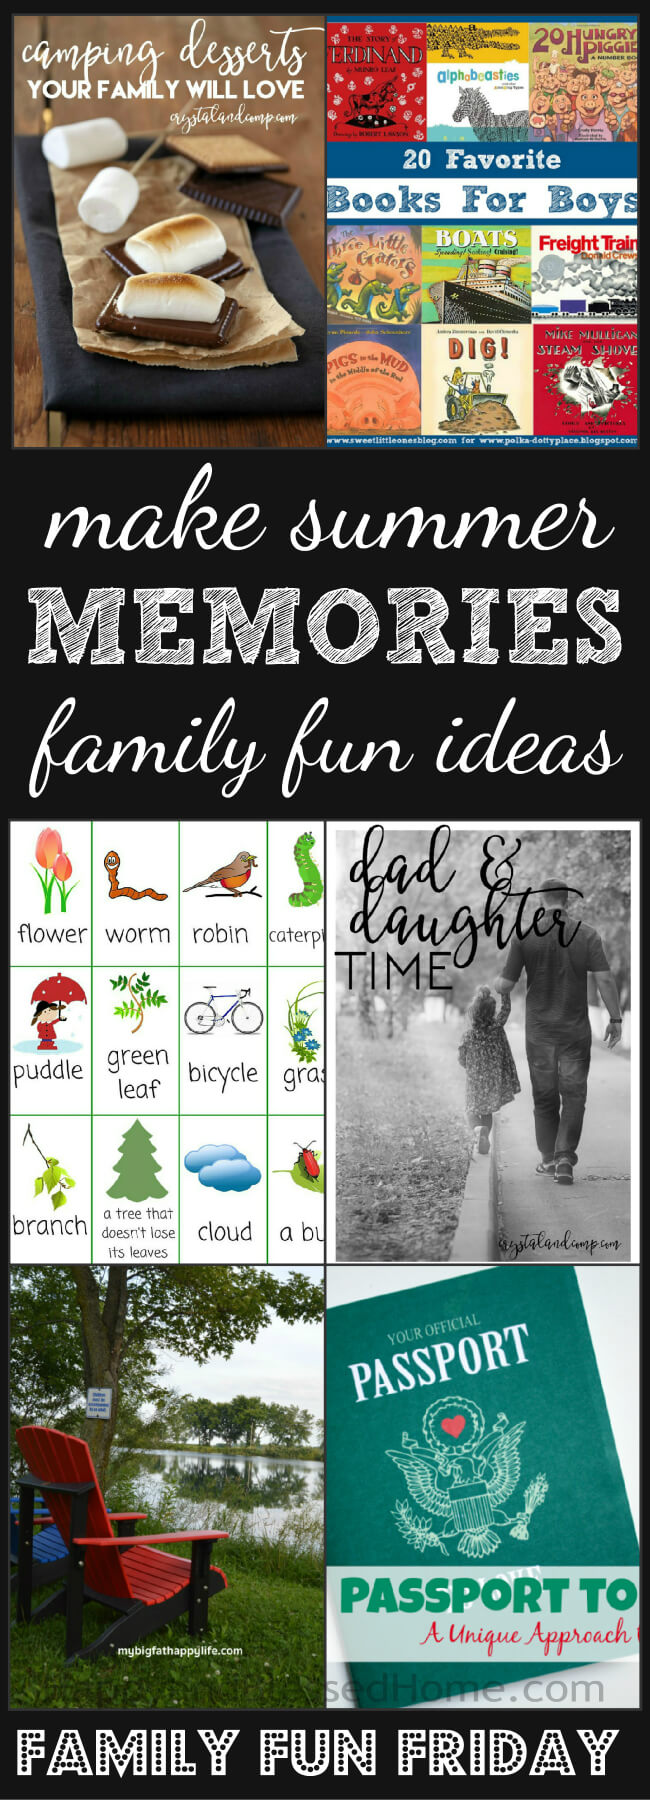 FUN Family Fun Friday - Make Summer Memories with these Family Fun Ideas - roundup by HappyandBlessedHome